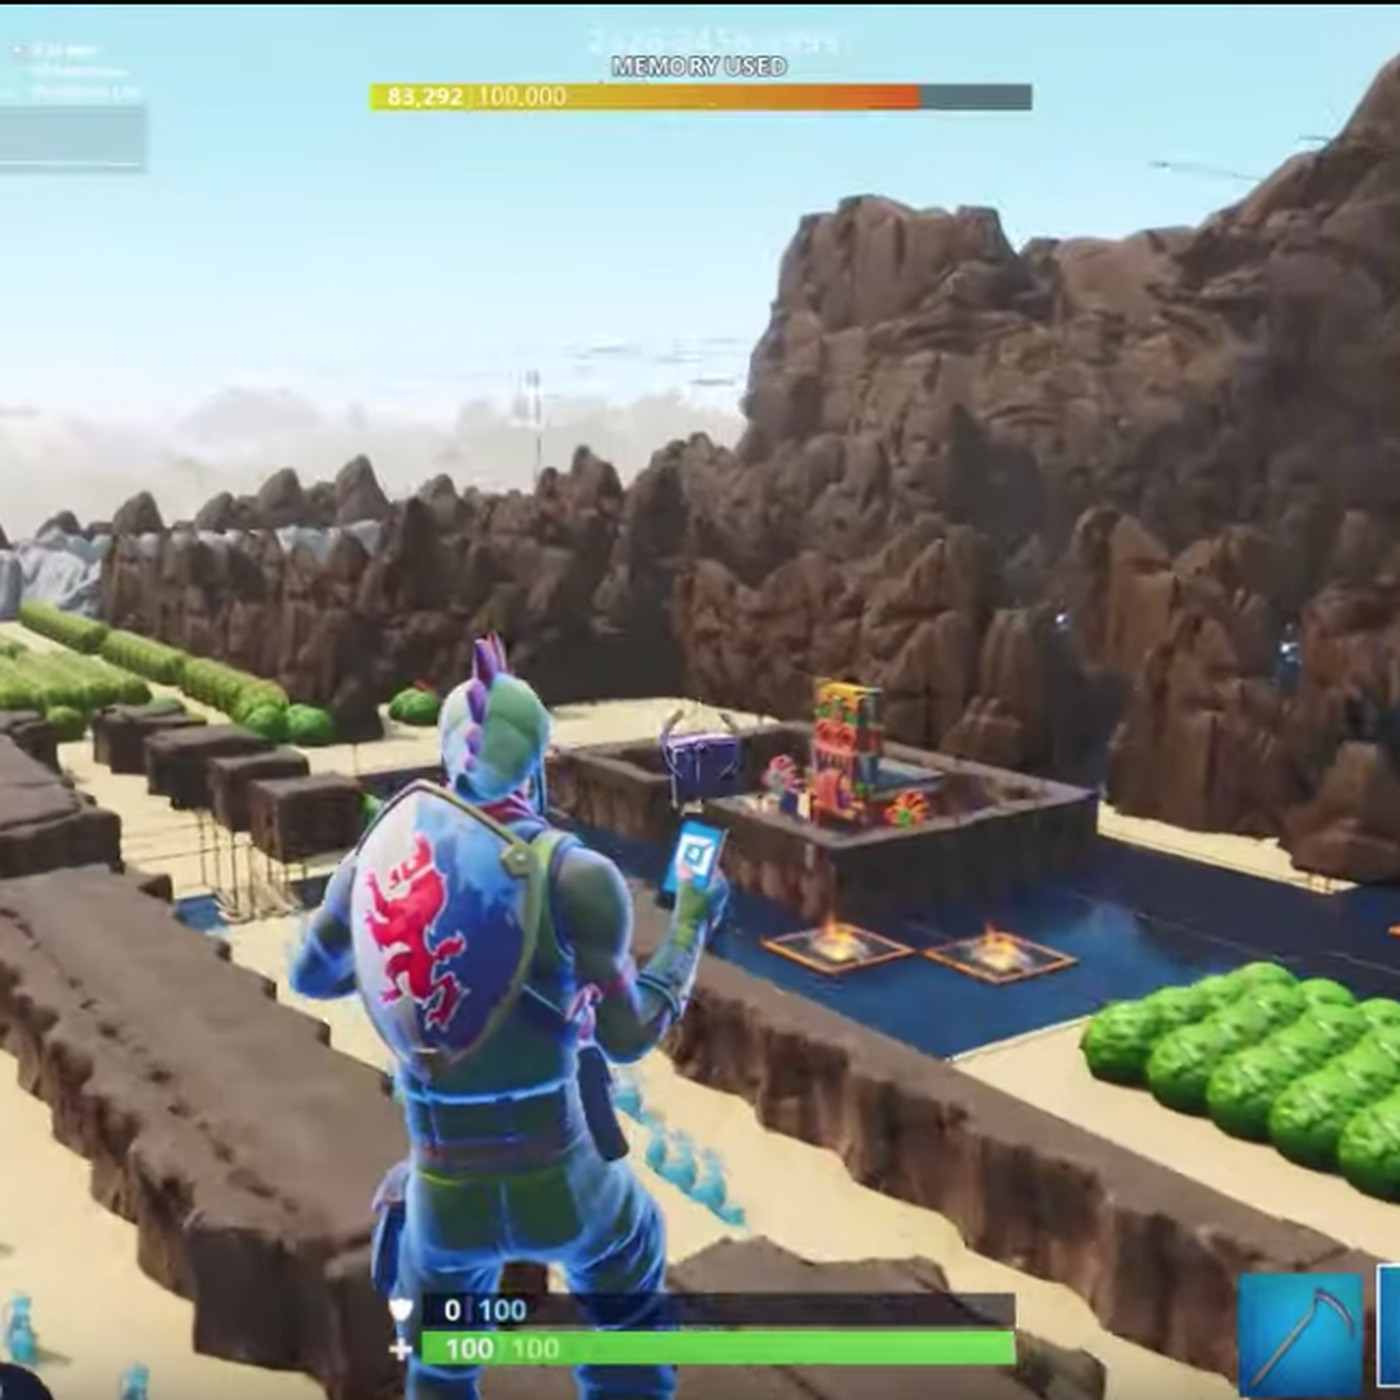 Here's The Legend of Zelda remade in Fortnite Creative